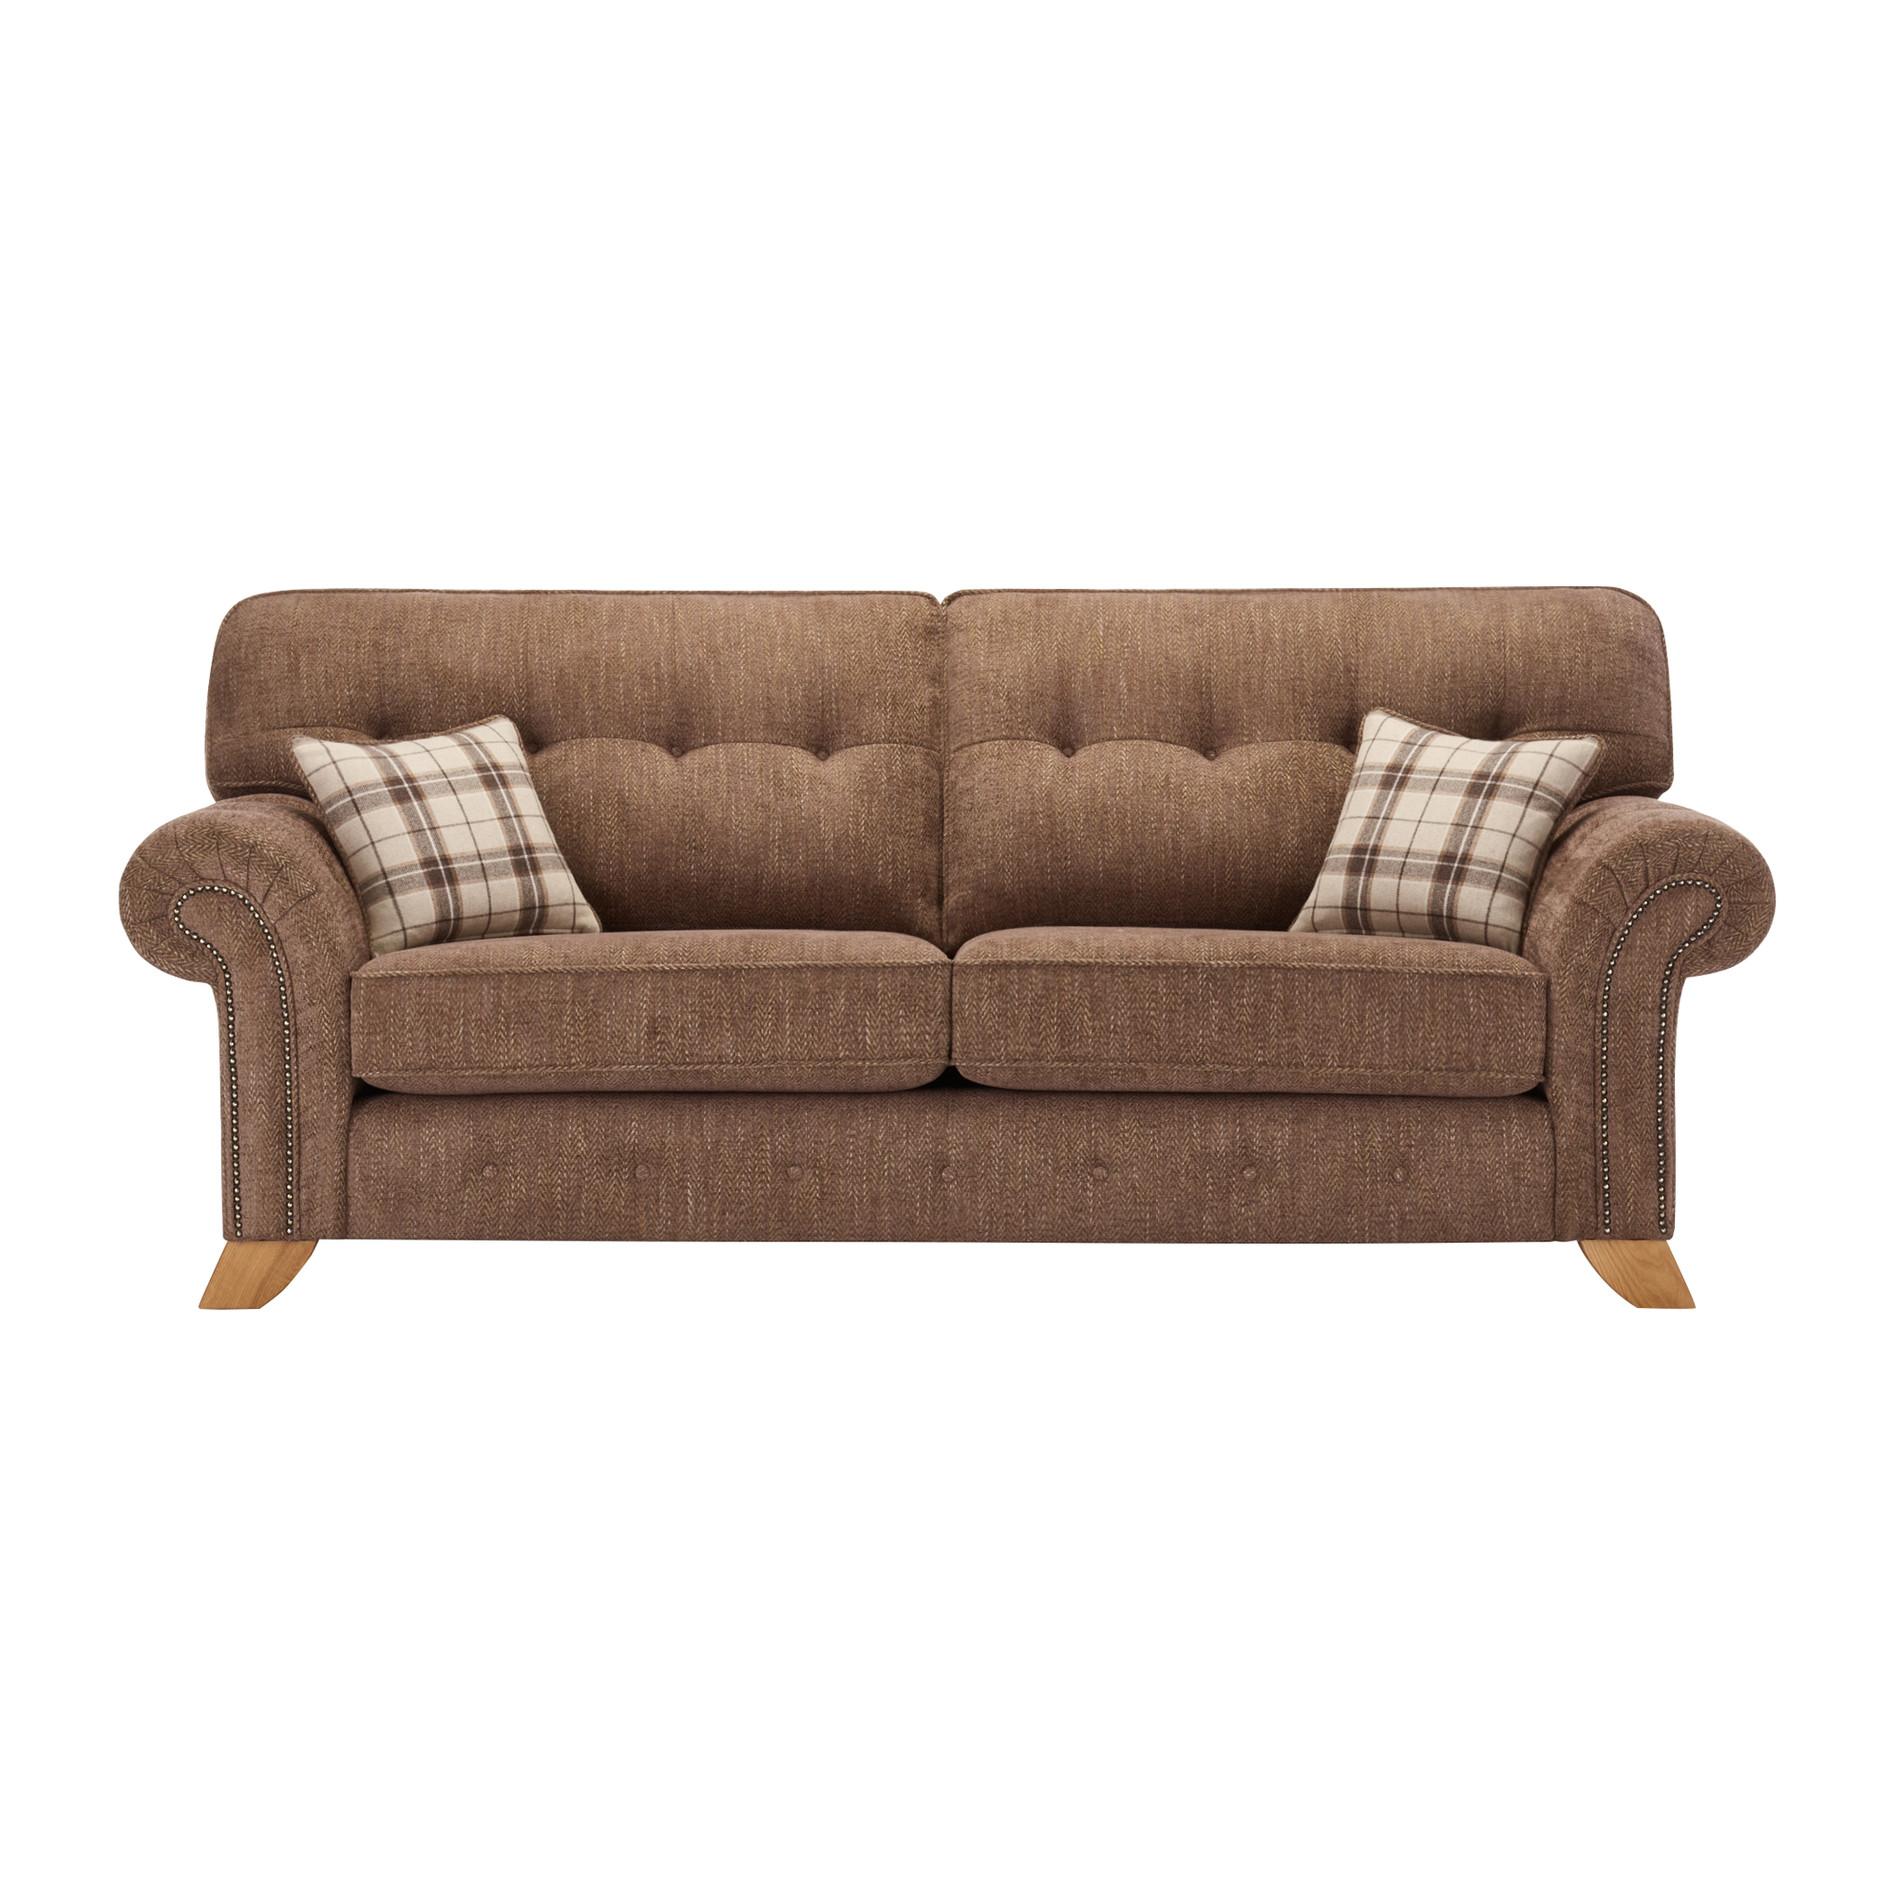 Montana 3 Seater High Back Sofa in Brown Tartan Cushions